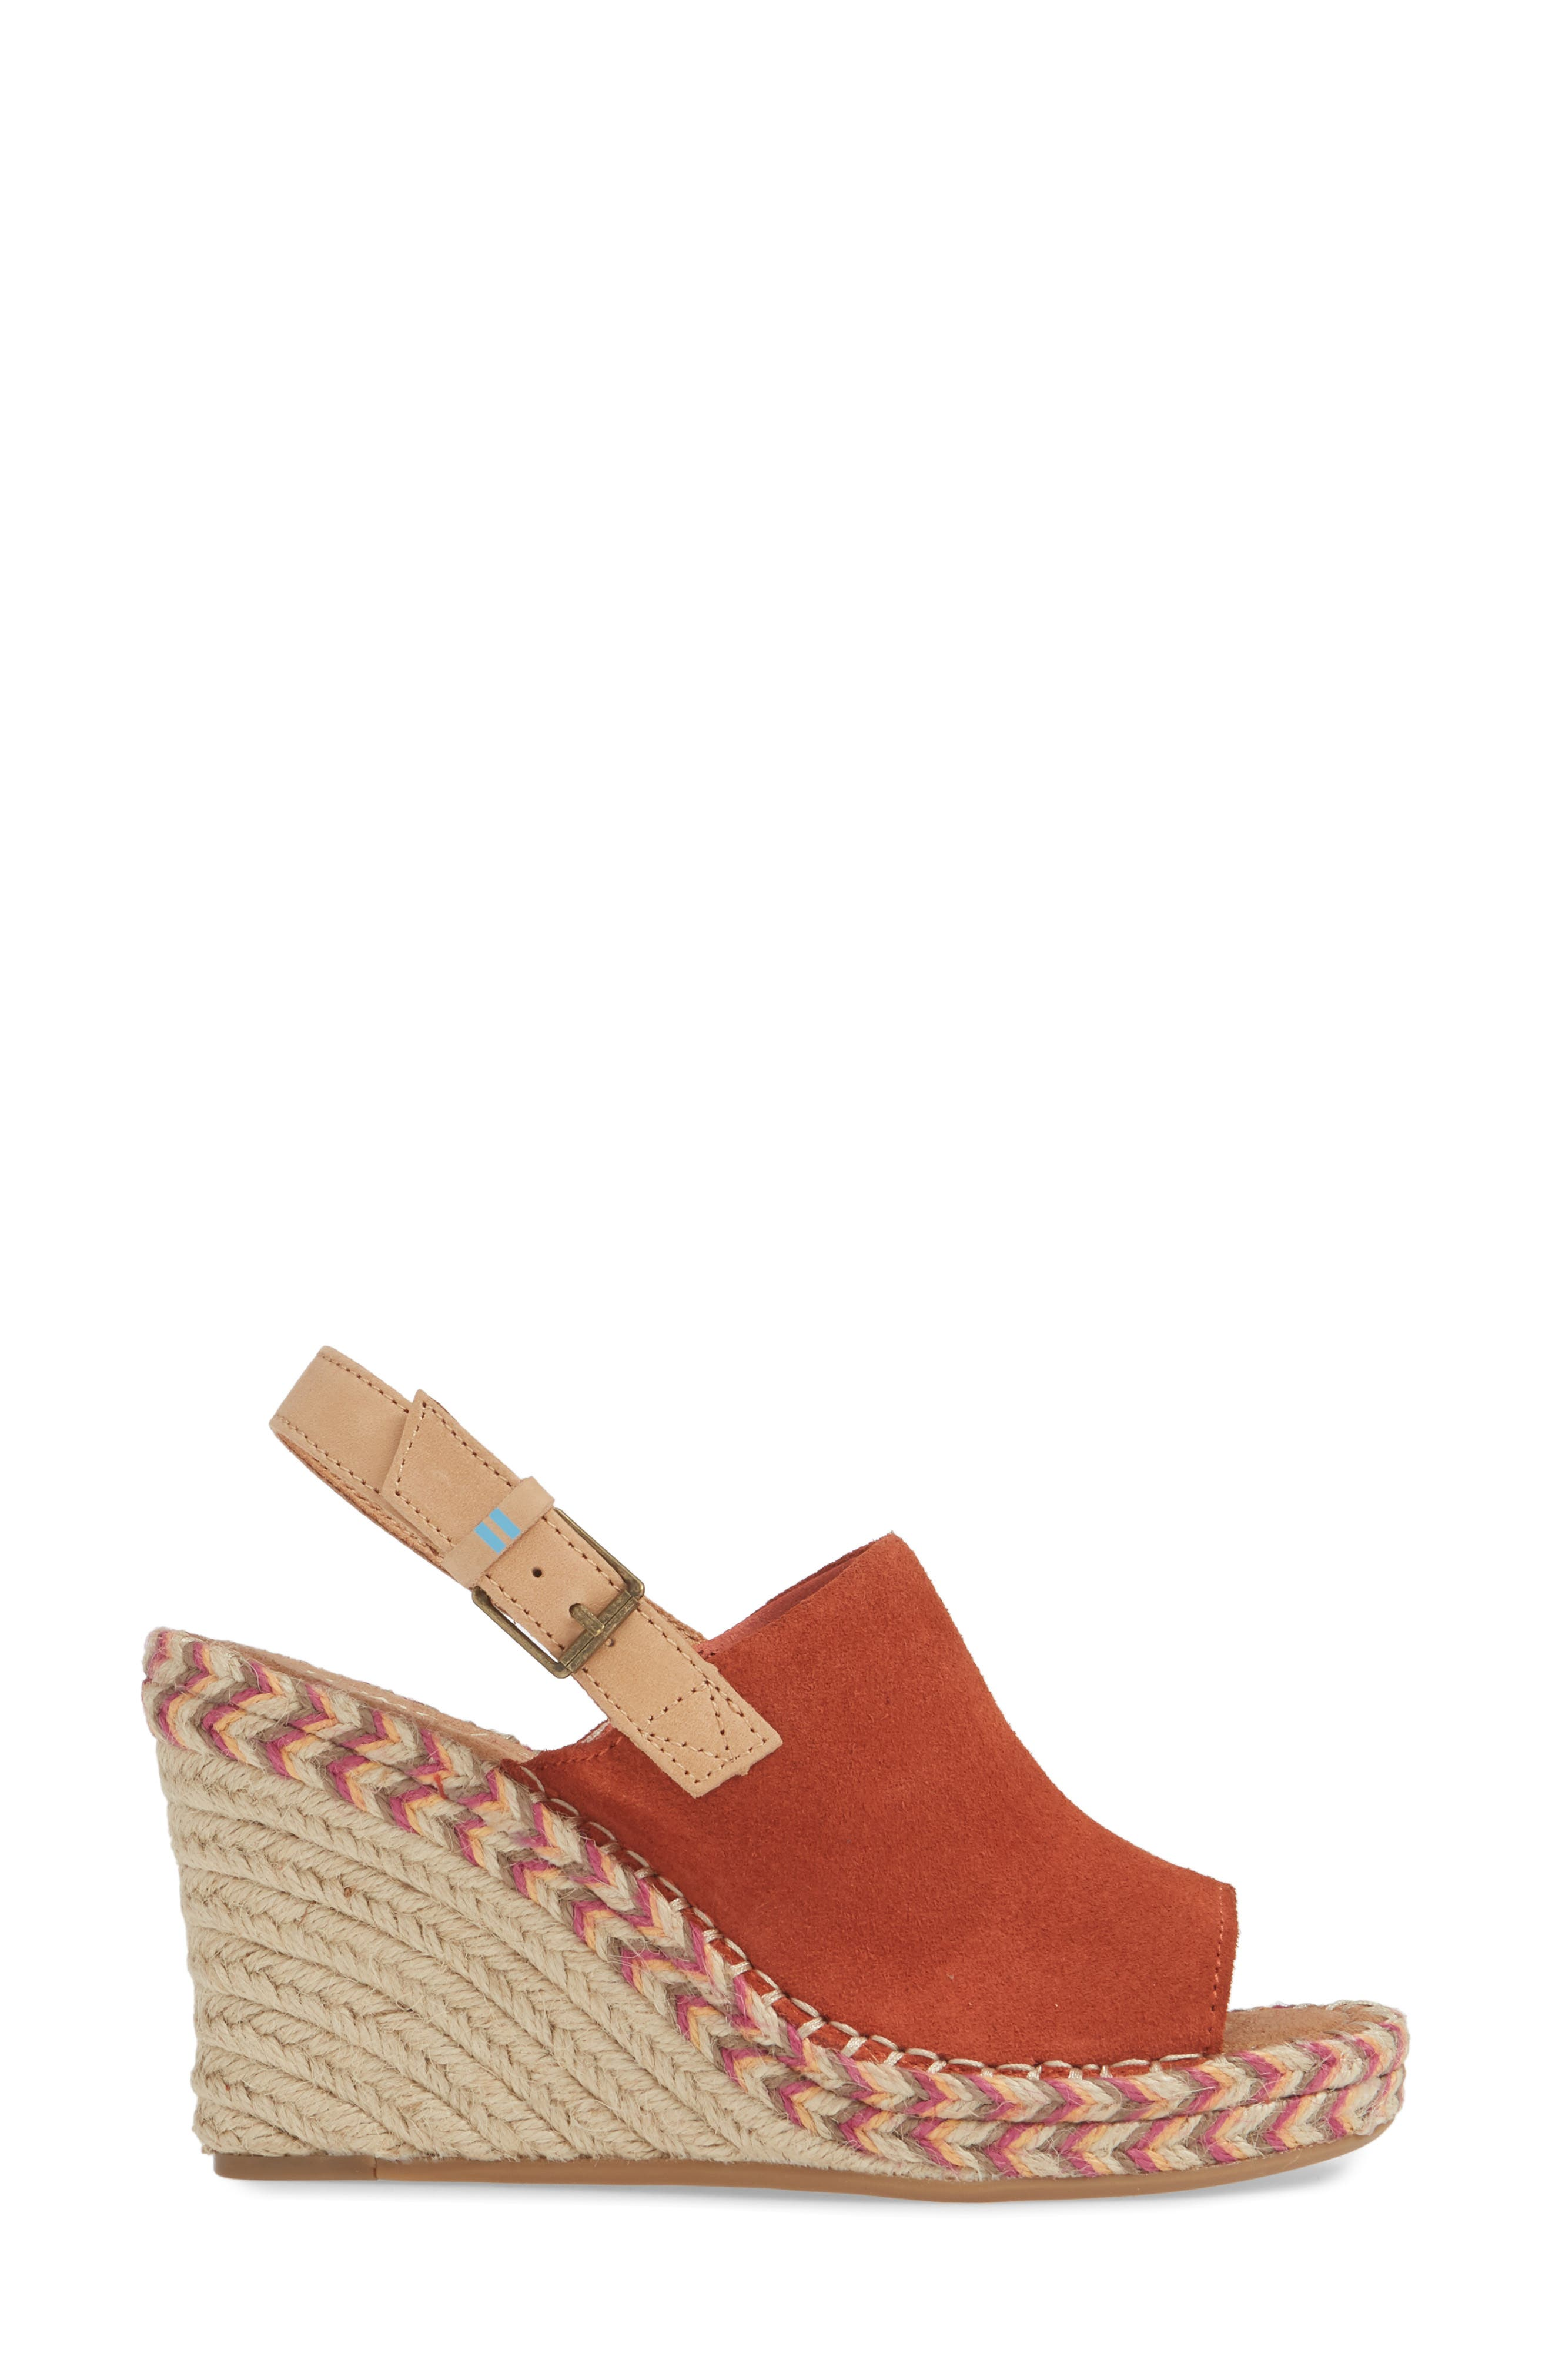 TOMS, Monica Slingback Wedge, Alternate thumbnail 3, color, SPICE SUEDE